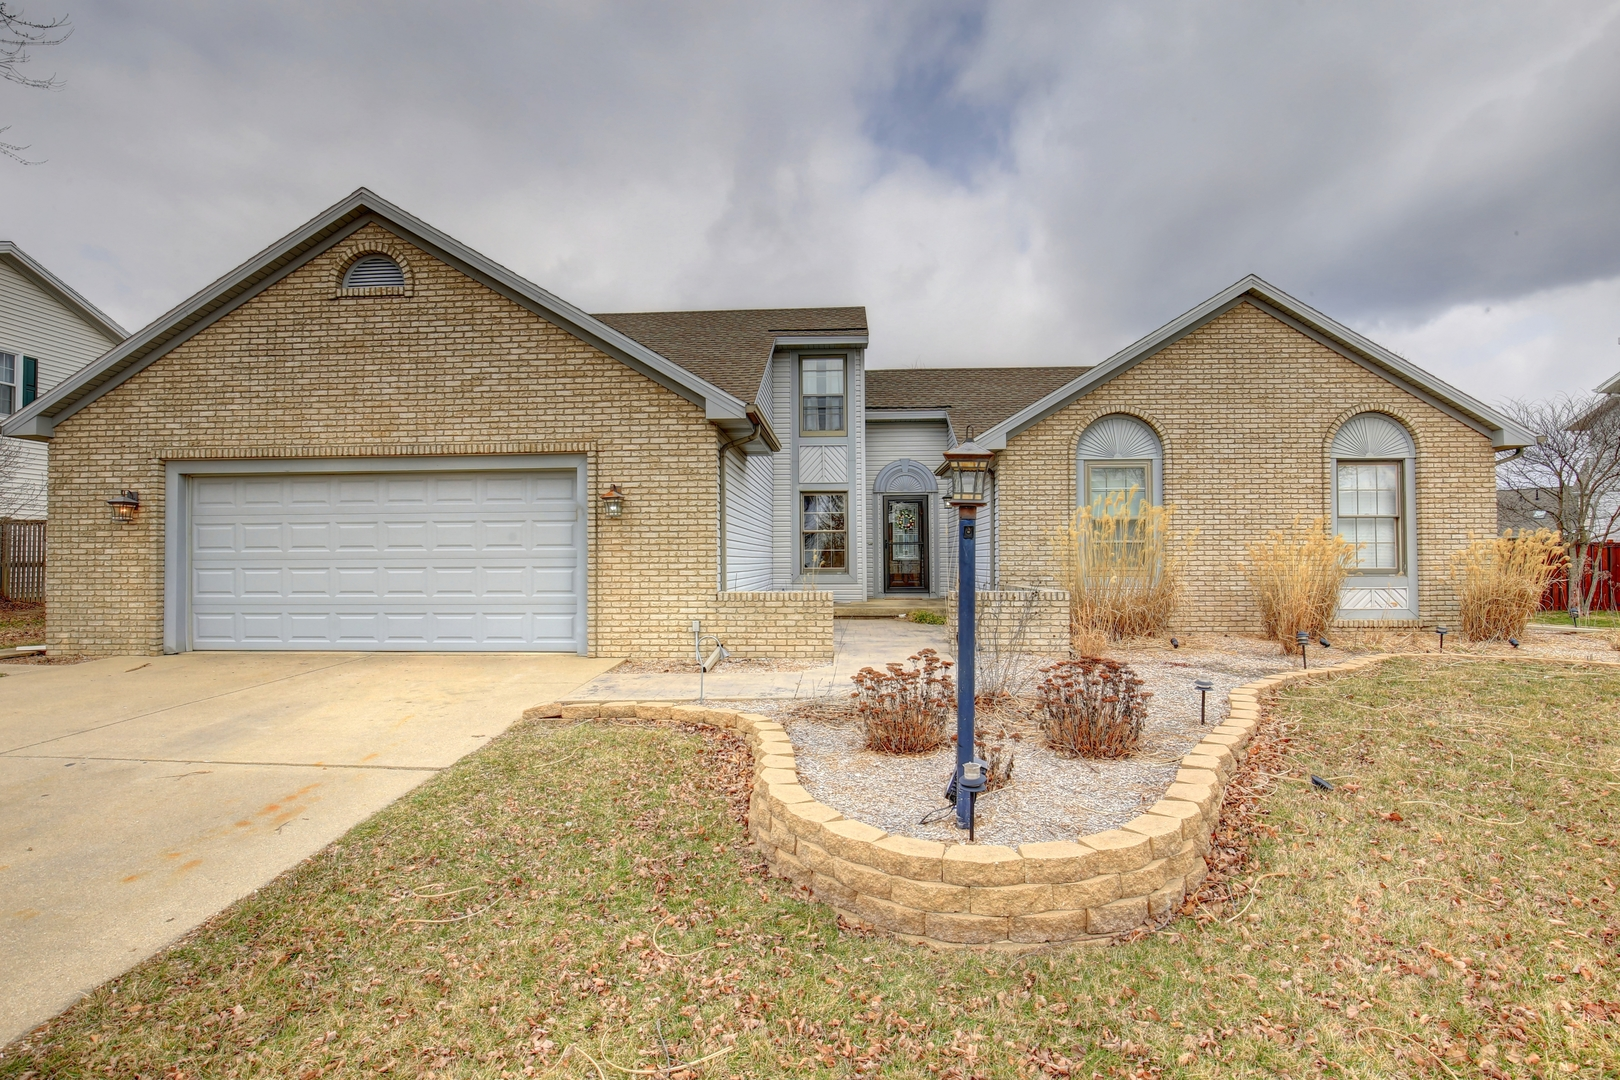 2906 Wedgewood Drive, Champaign in Champaign County, IL 61822 Home for Sale